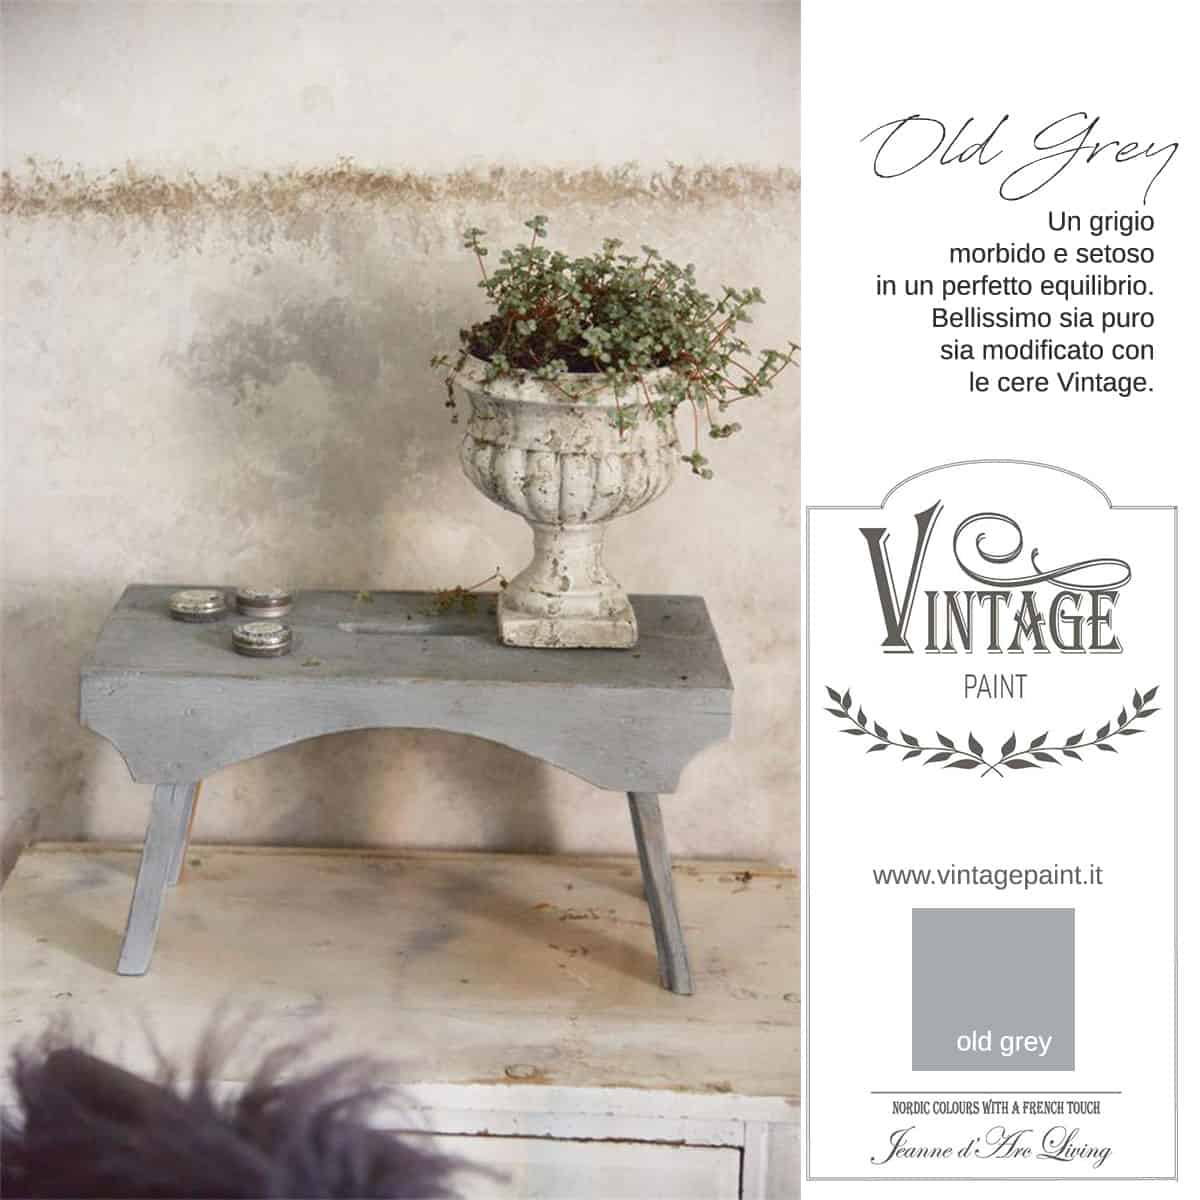 old grey grigio vintage chalk paint vernici shabby chic autentico look gesso